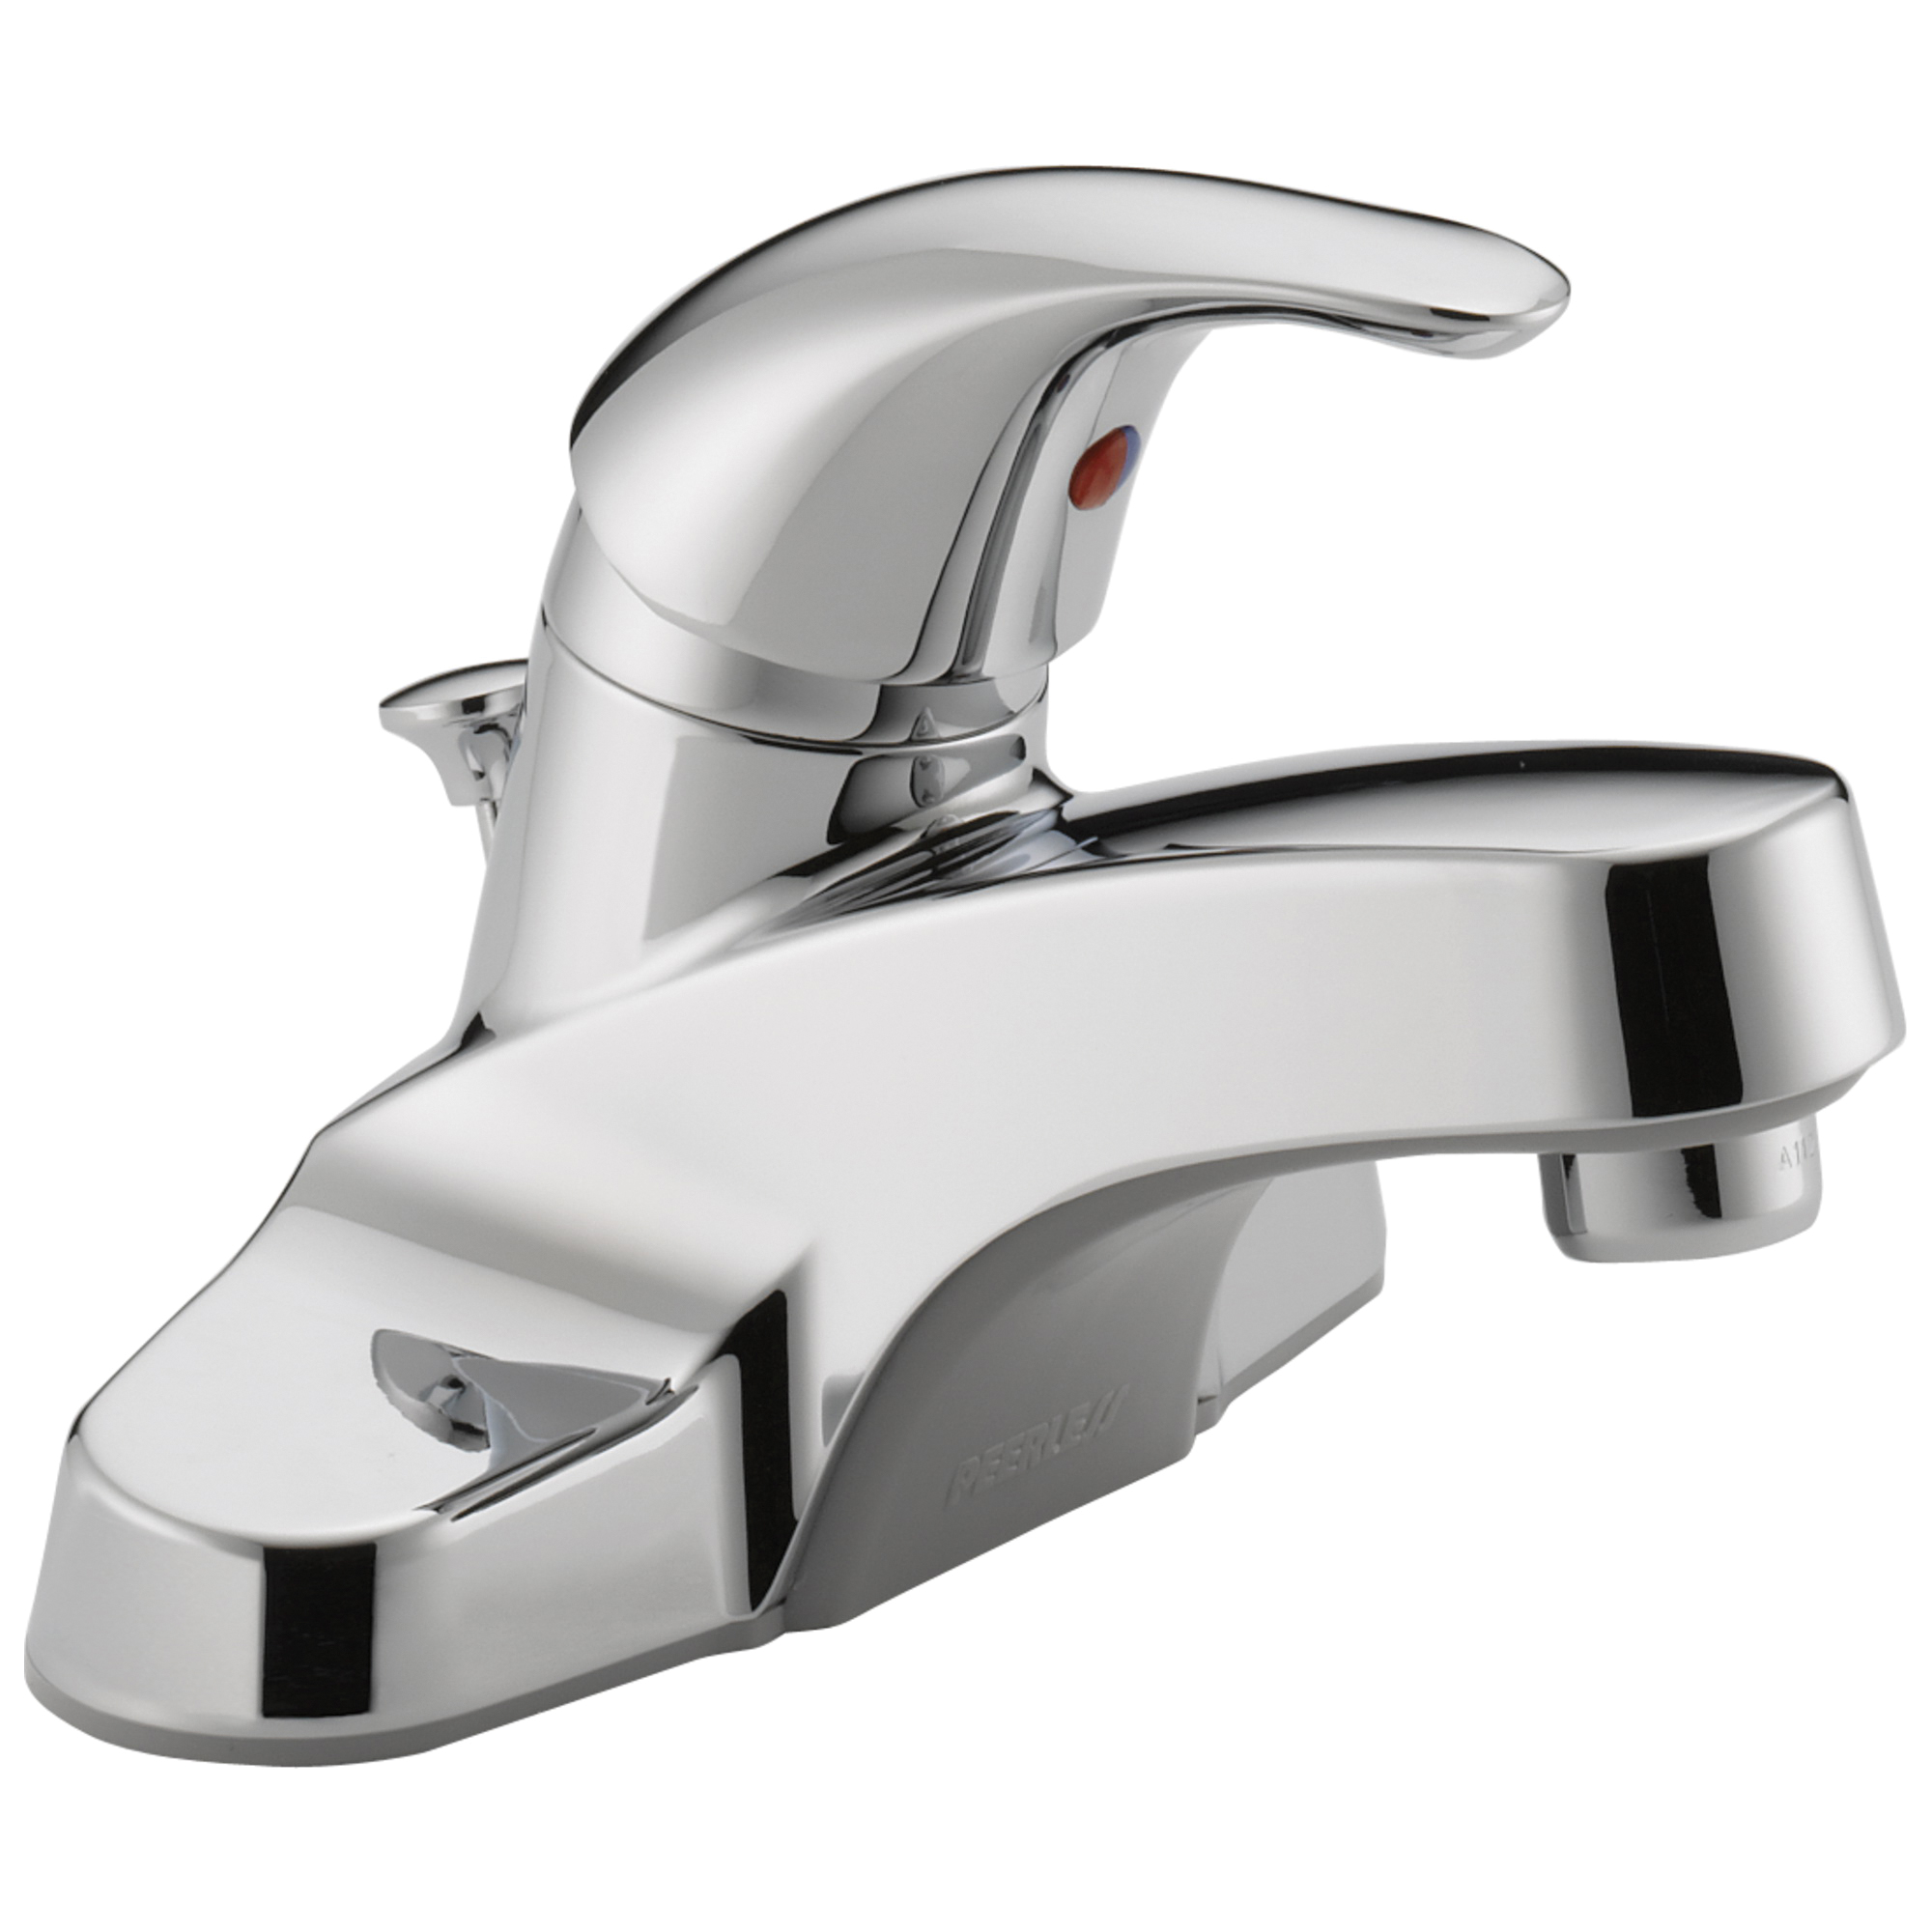 Peerless® P136LF-M Centerset Lavatory Faucet, Polished Chrome, 1 Handles, Metal Pop-Up Drain, 1.2 gpm Flow Rate